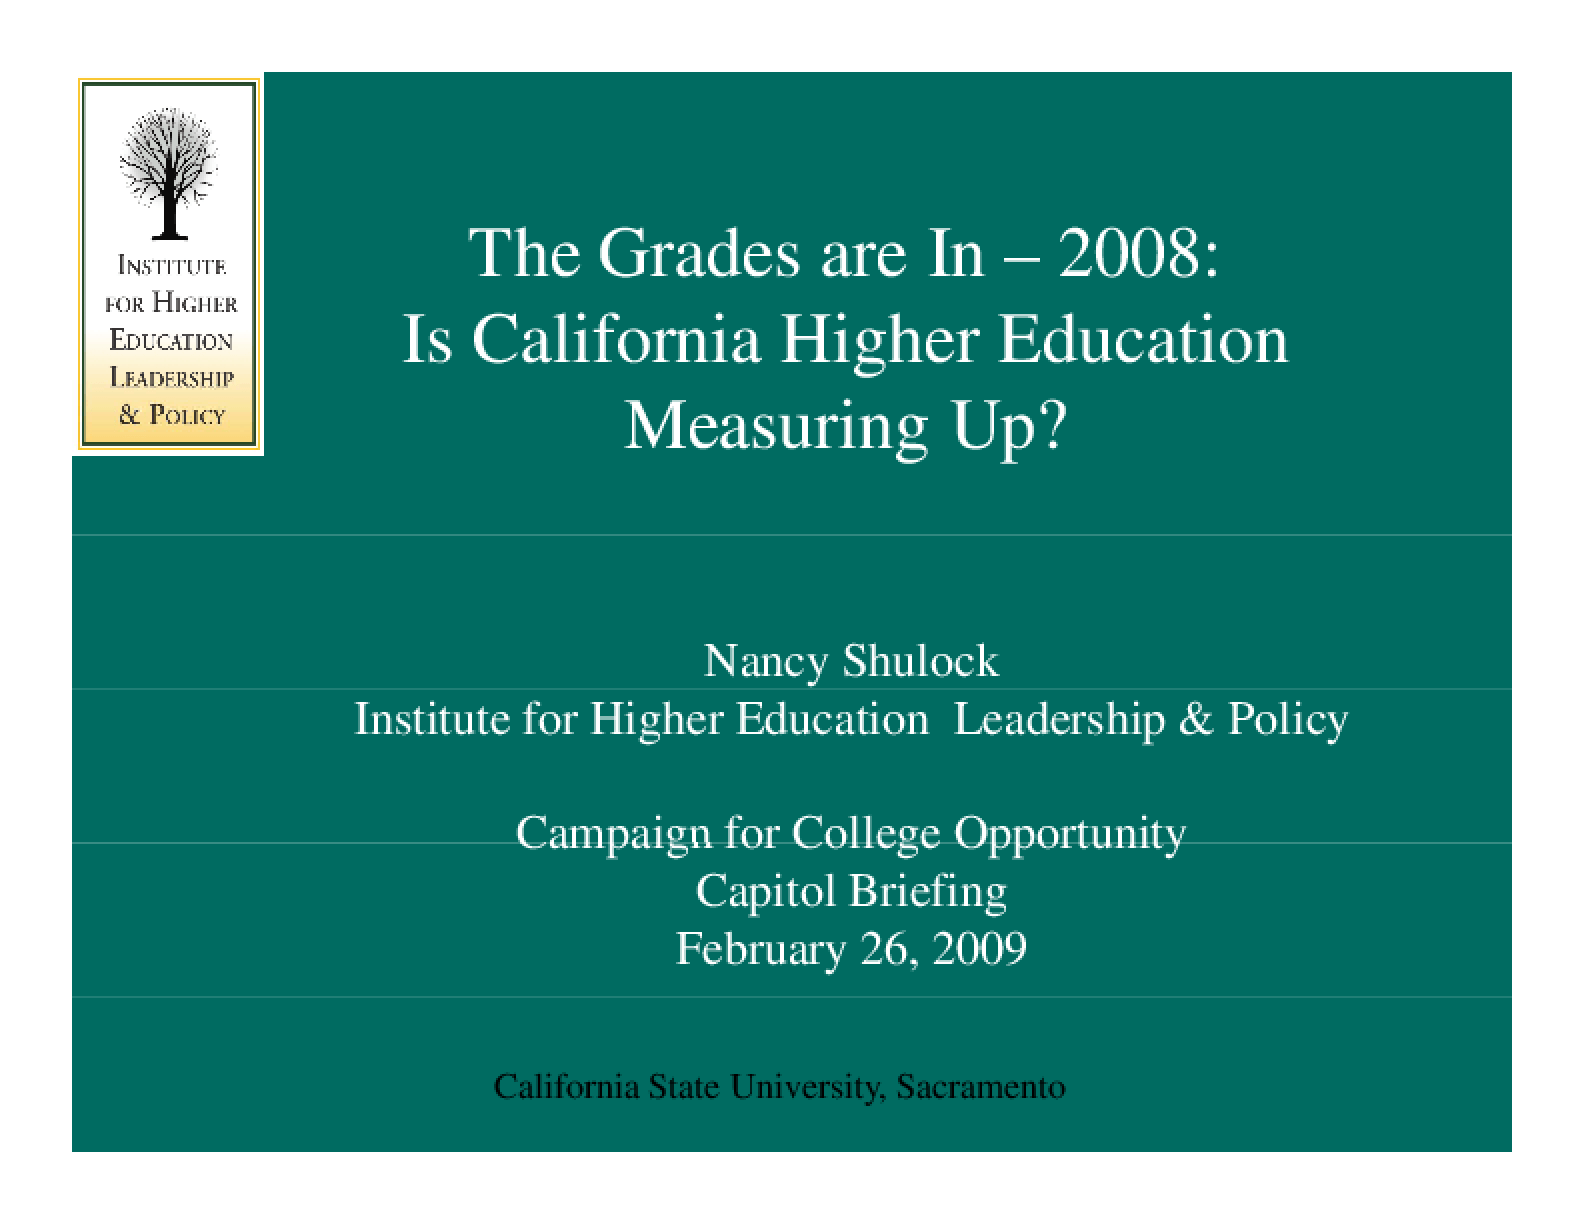 The Grades Are in 2008: Is California Higher Education Measuring Up?